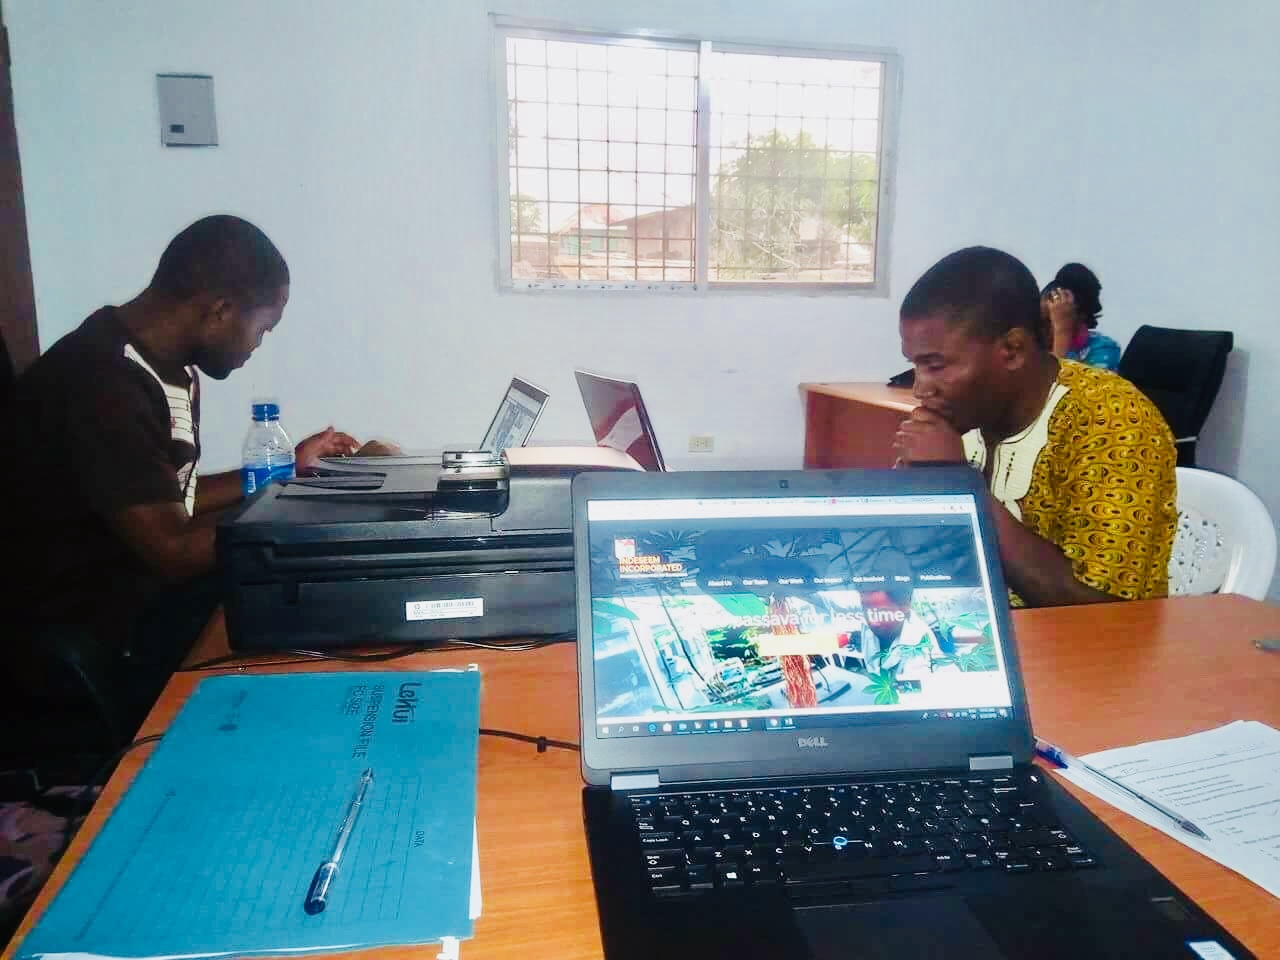 <h2>INDESEEM, Inc. Opens Office in Monrovia, Liberia</h2><div class='slide-content'>We are happy and please to announce that INDESEEM, Inc. has officially opened our first international office in Monrovia, Liberia.</div><a href='https://indeseem.org/2018/08/26/indeseem-incorporated-liberia/' class='btn' title='Read more'>Read more</a>